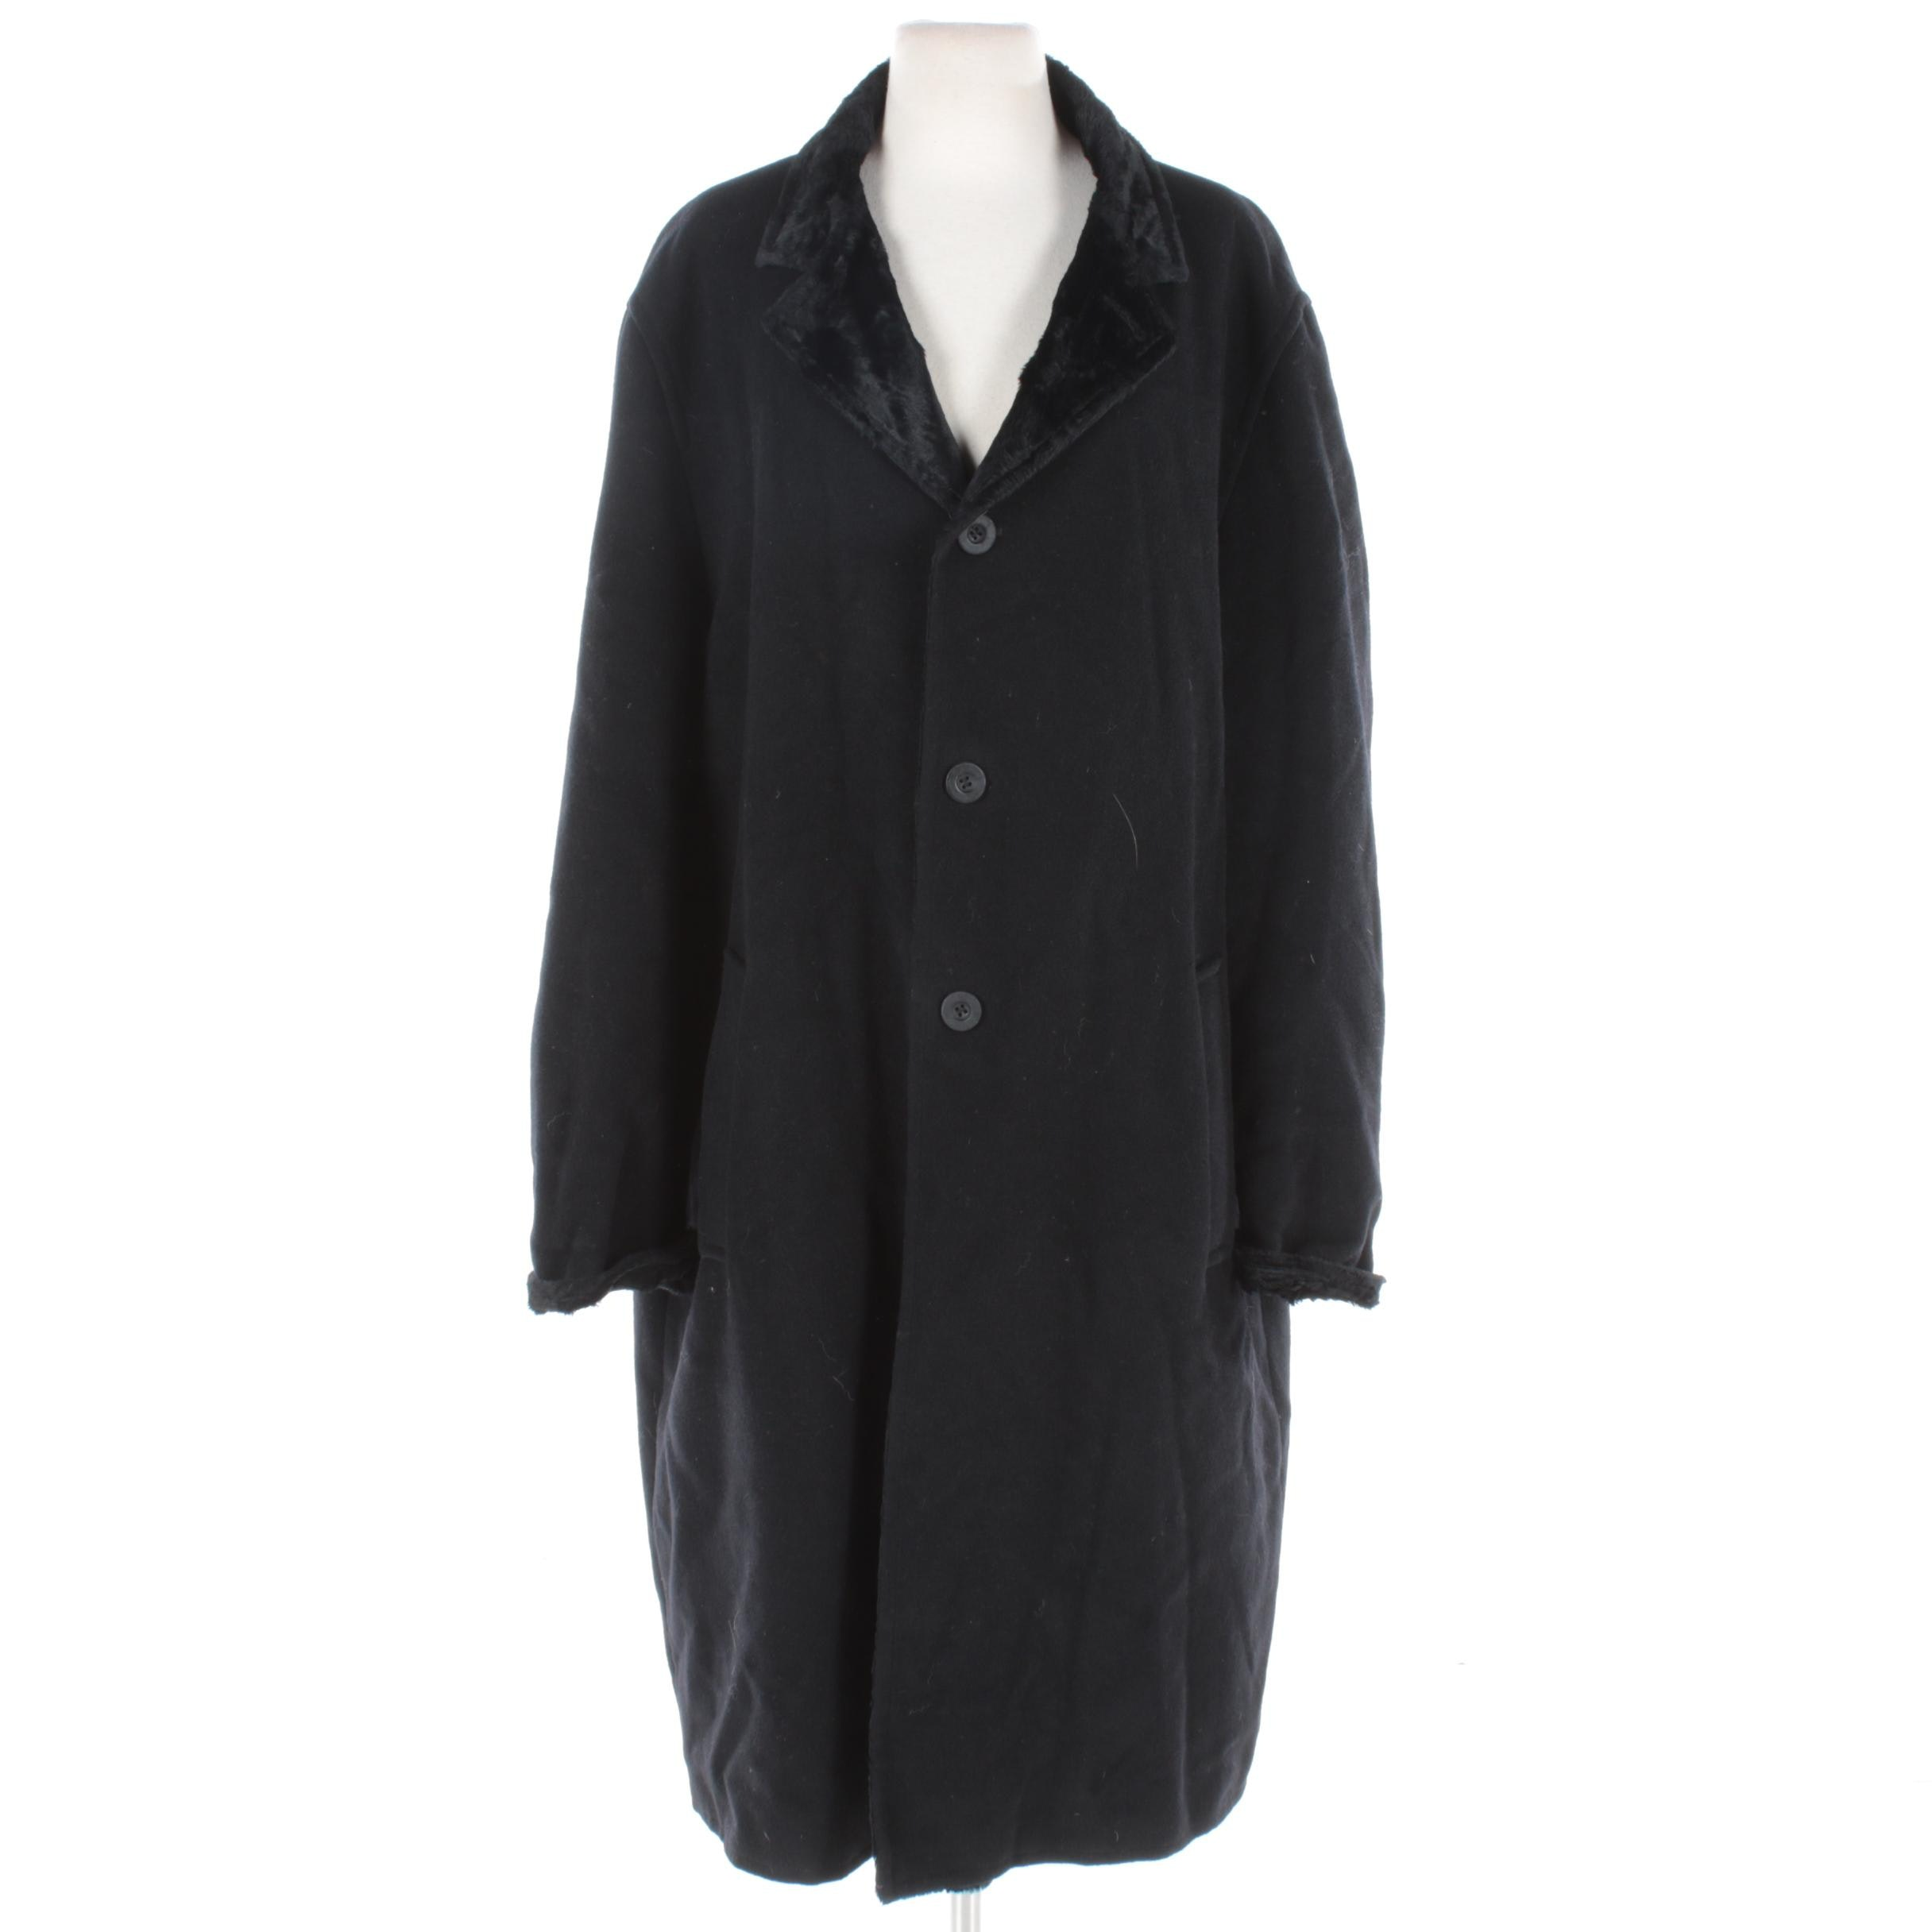 Men's Sabato Russo Black Wool and Faux Shearling Coat